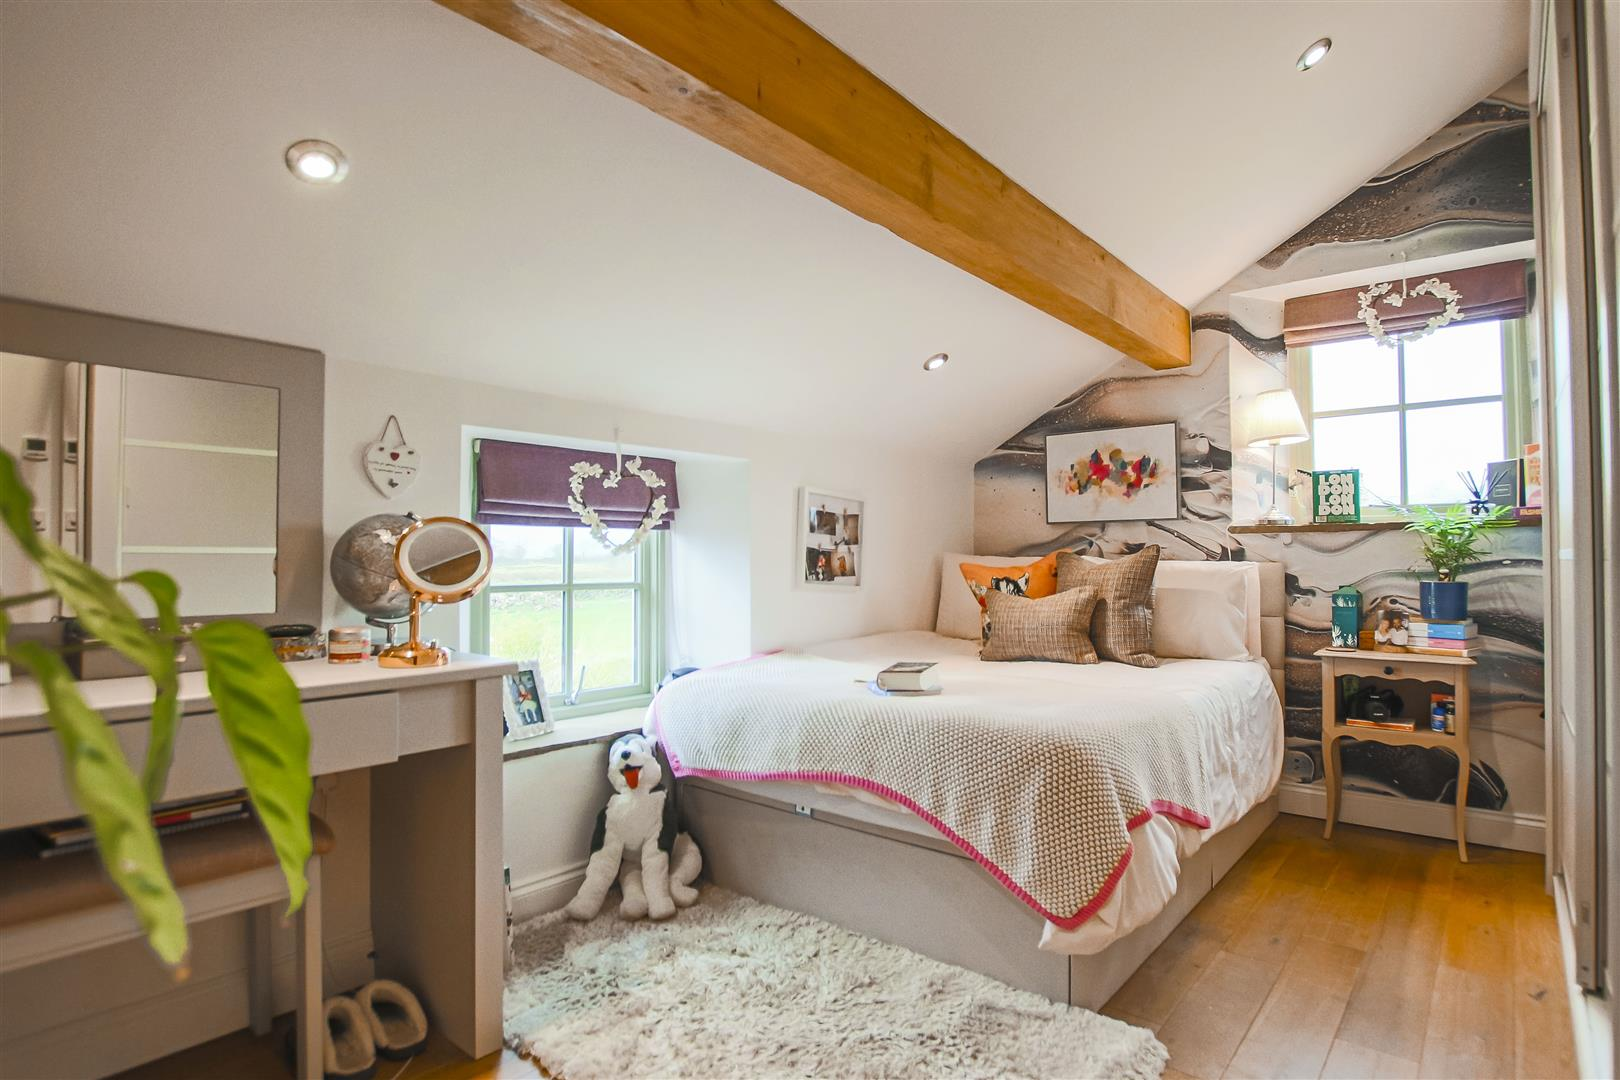 4 Bedroom Barn Conversion For Sale - Bedroom 4